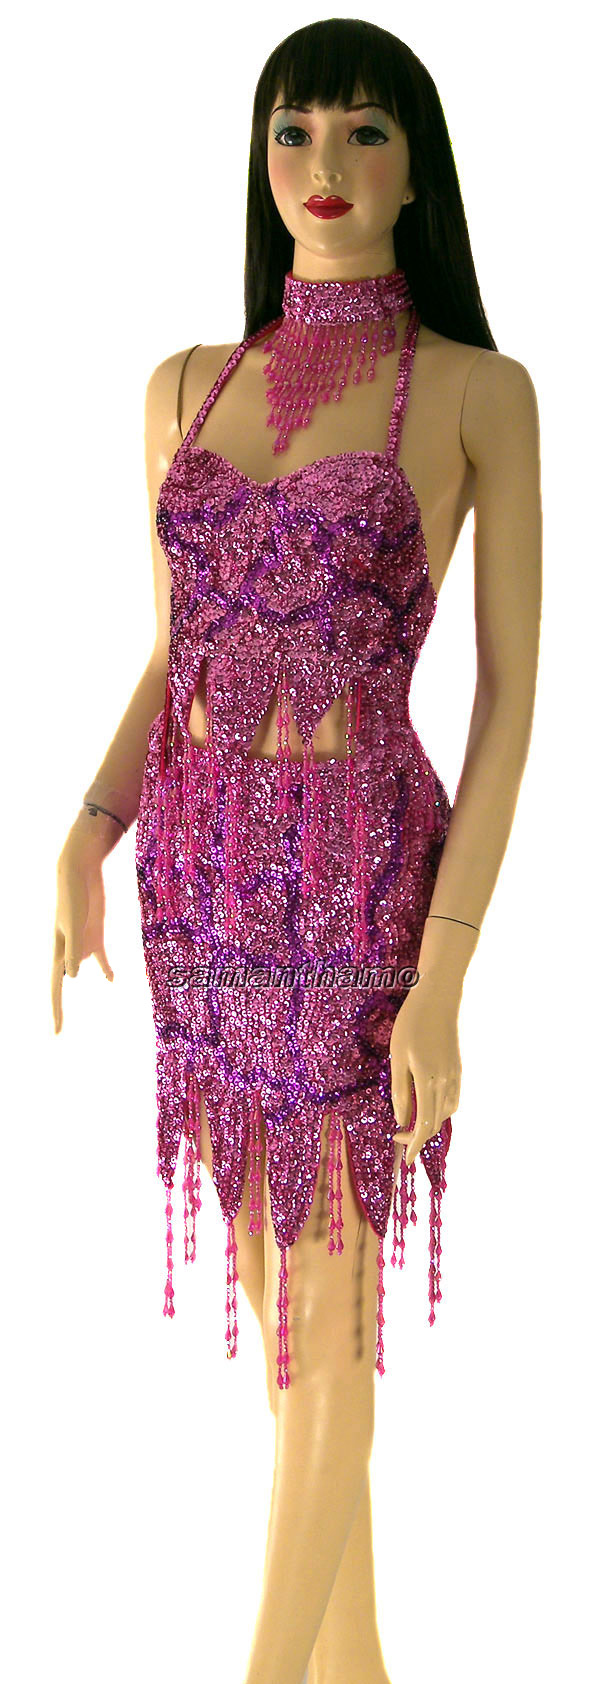 https://michaeljacksoncelebrityclothing.com/sequin-2-piece-dresses/TM4050-pink-sequin-dress.jpg